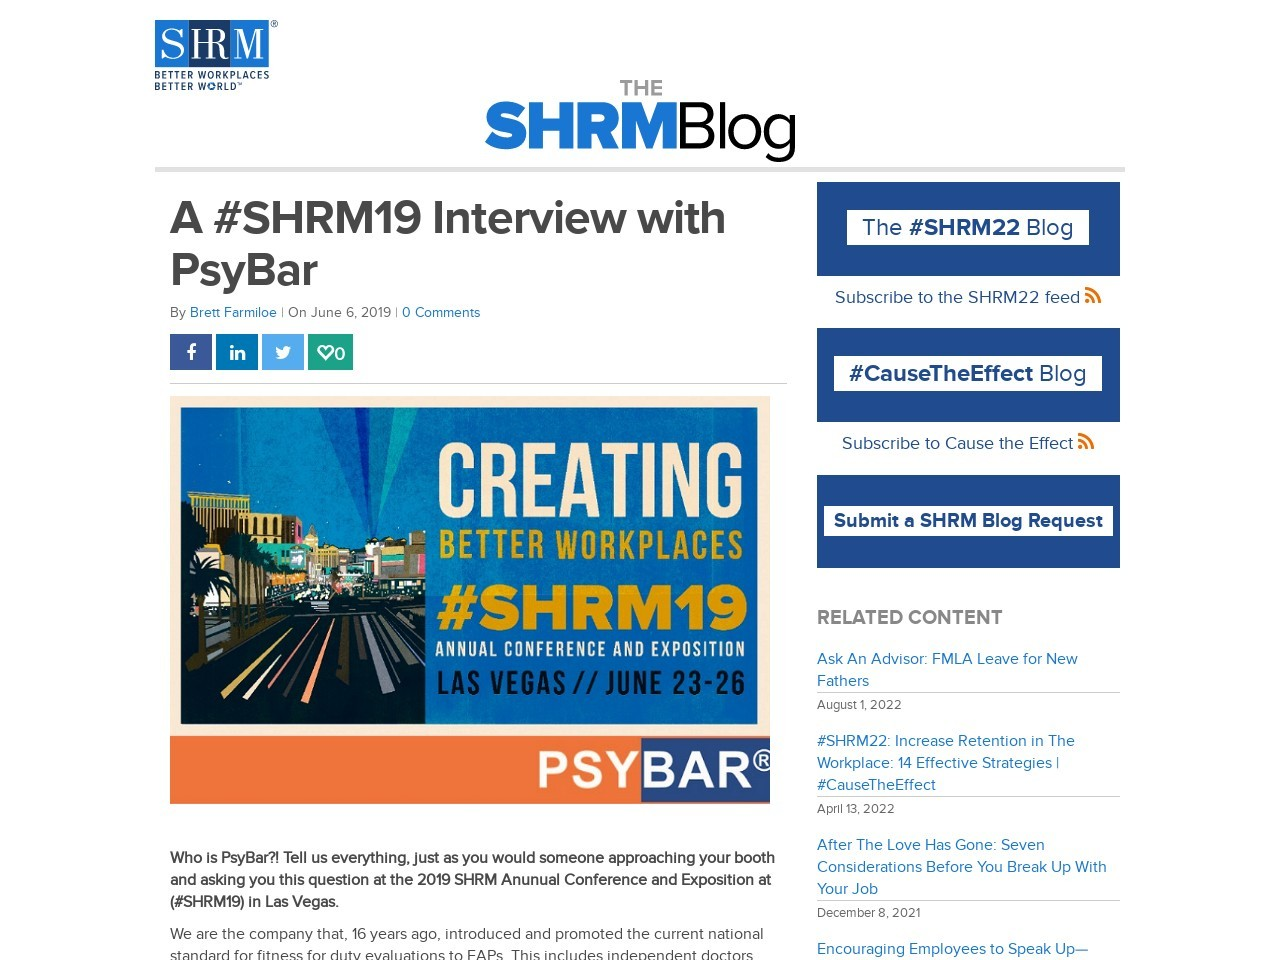 A #SHRM19 Interview with PsyBar